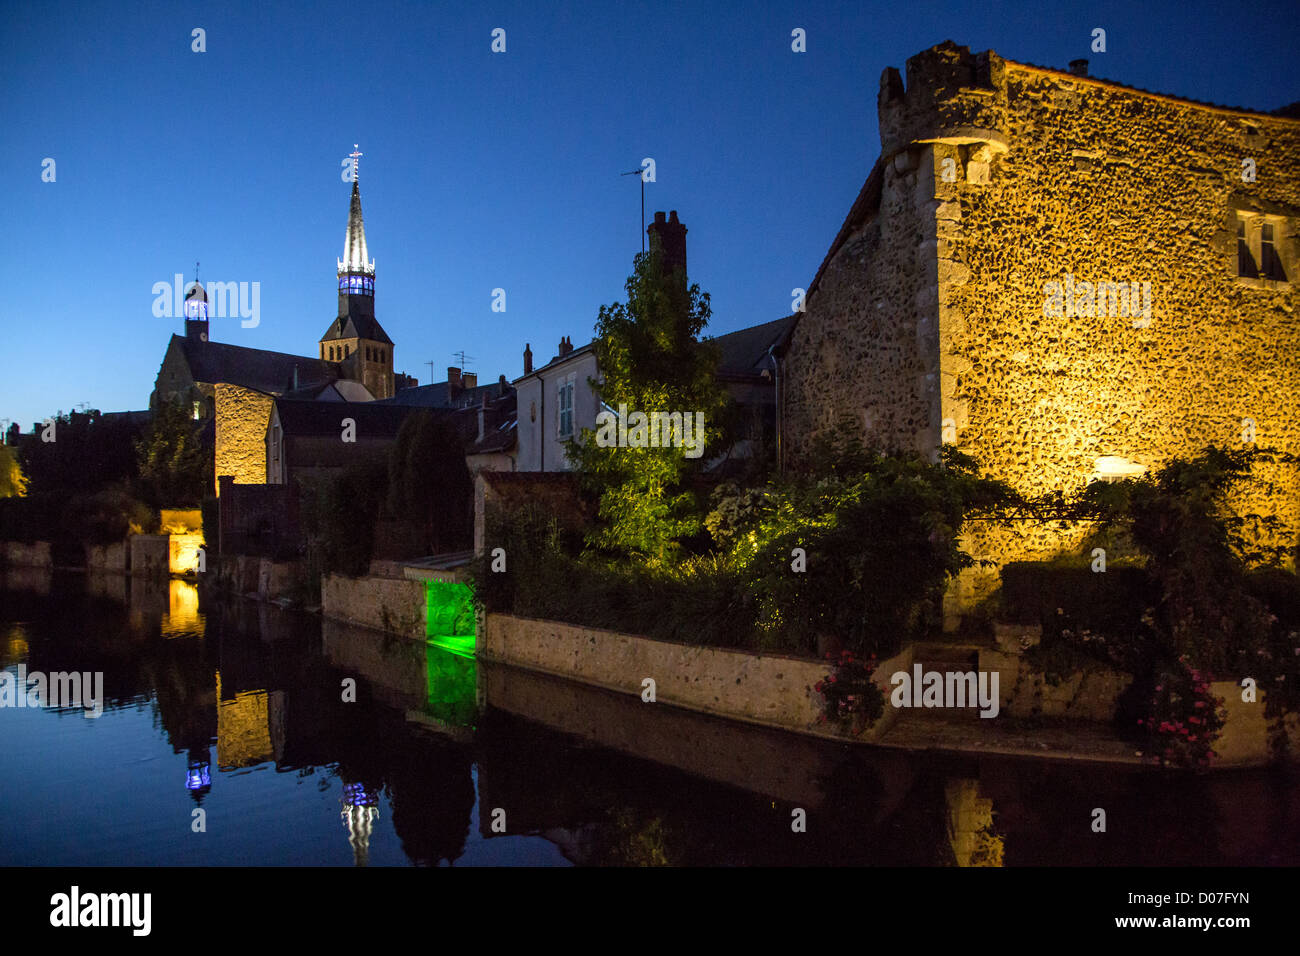 NIGHTTIME LIGHTING FORTIFICATIONS MOATS MEDIEVAL CITY MEDIEVAL CITY BONNEVAL NICKNAMED LITTLE VENICE BEAUCE EURE - Stock Image